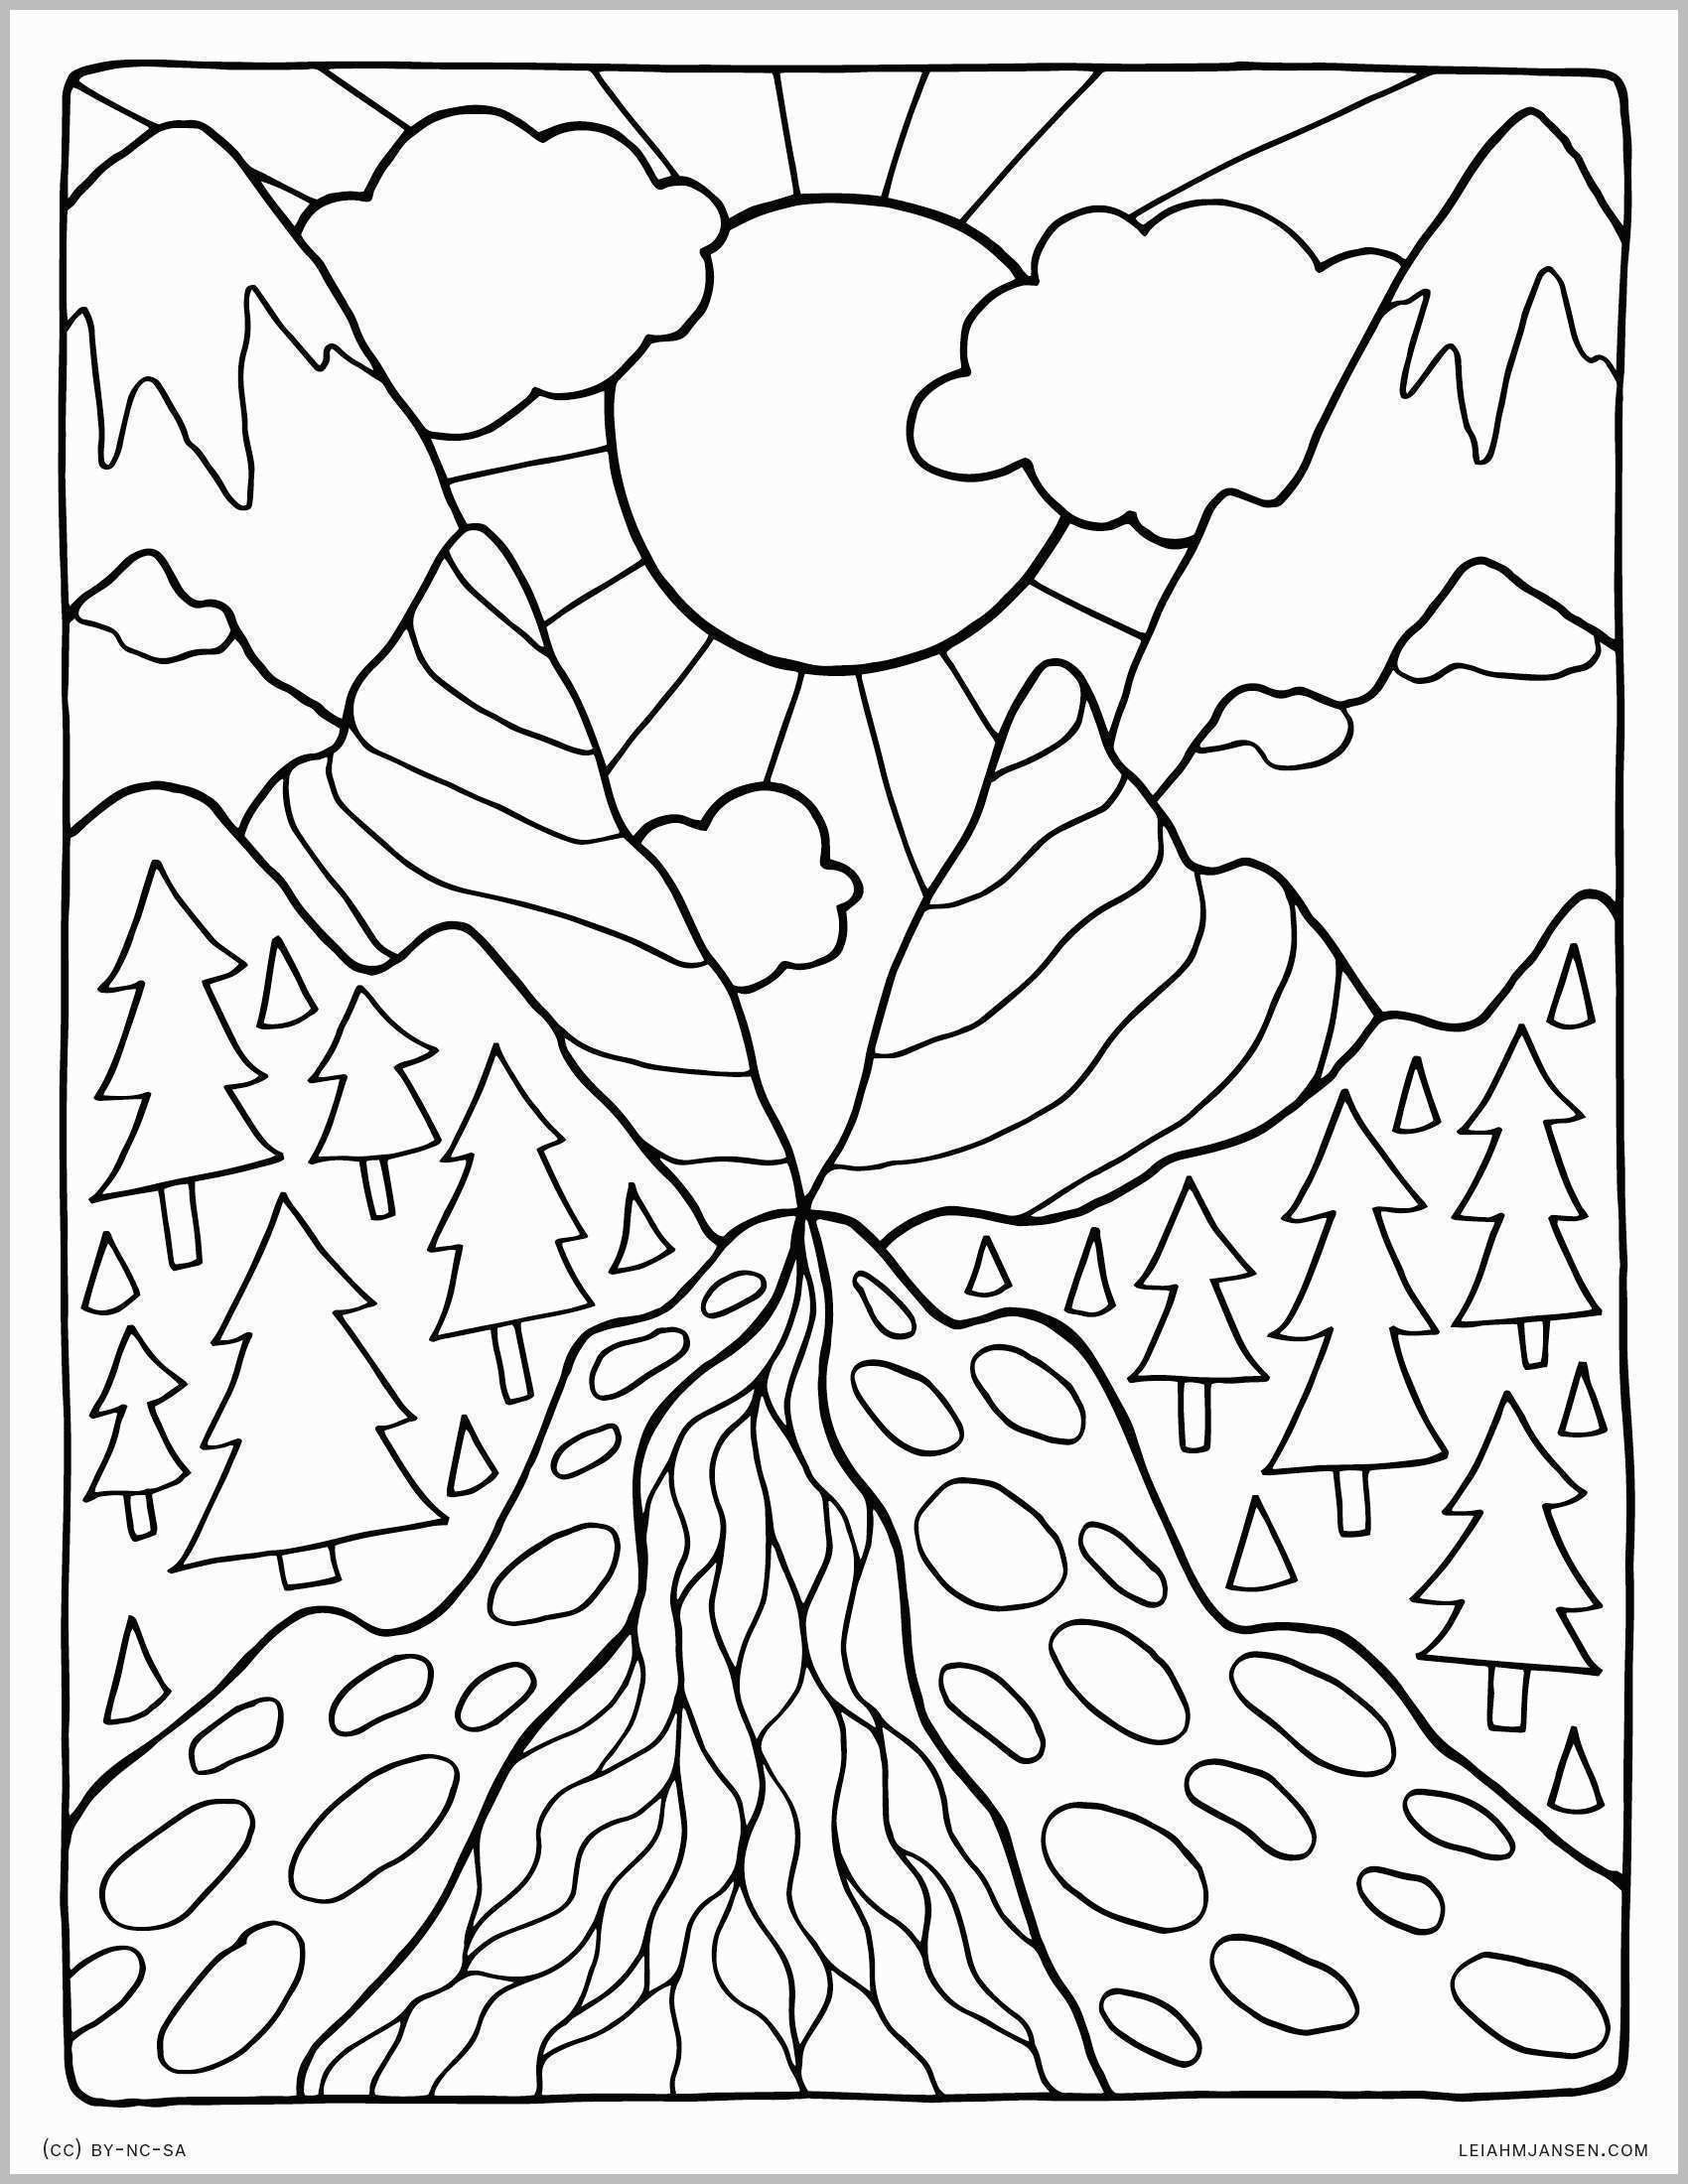 Landscape Coloring Book Fresh Coloring Pages Best Of Coloring